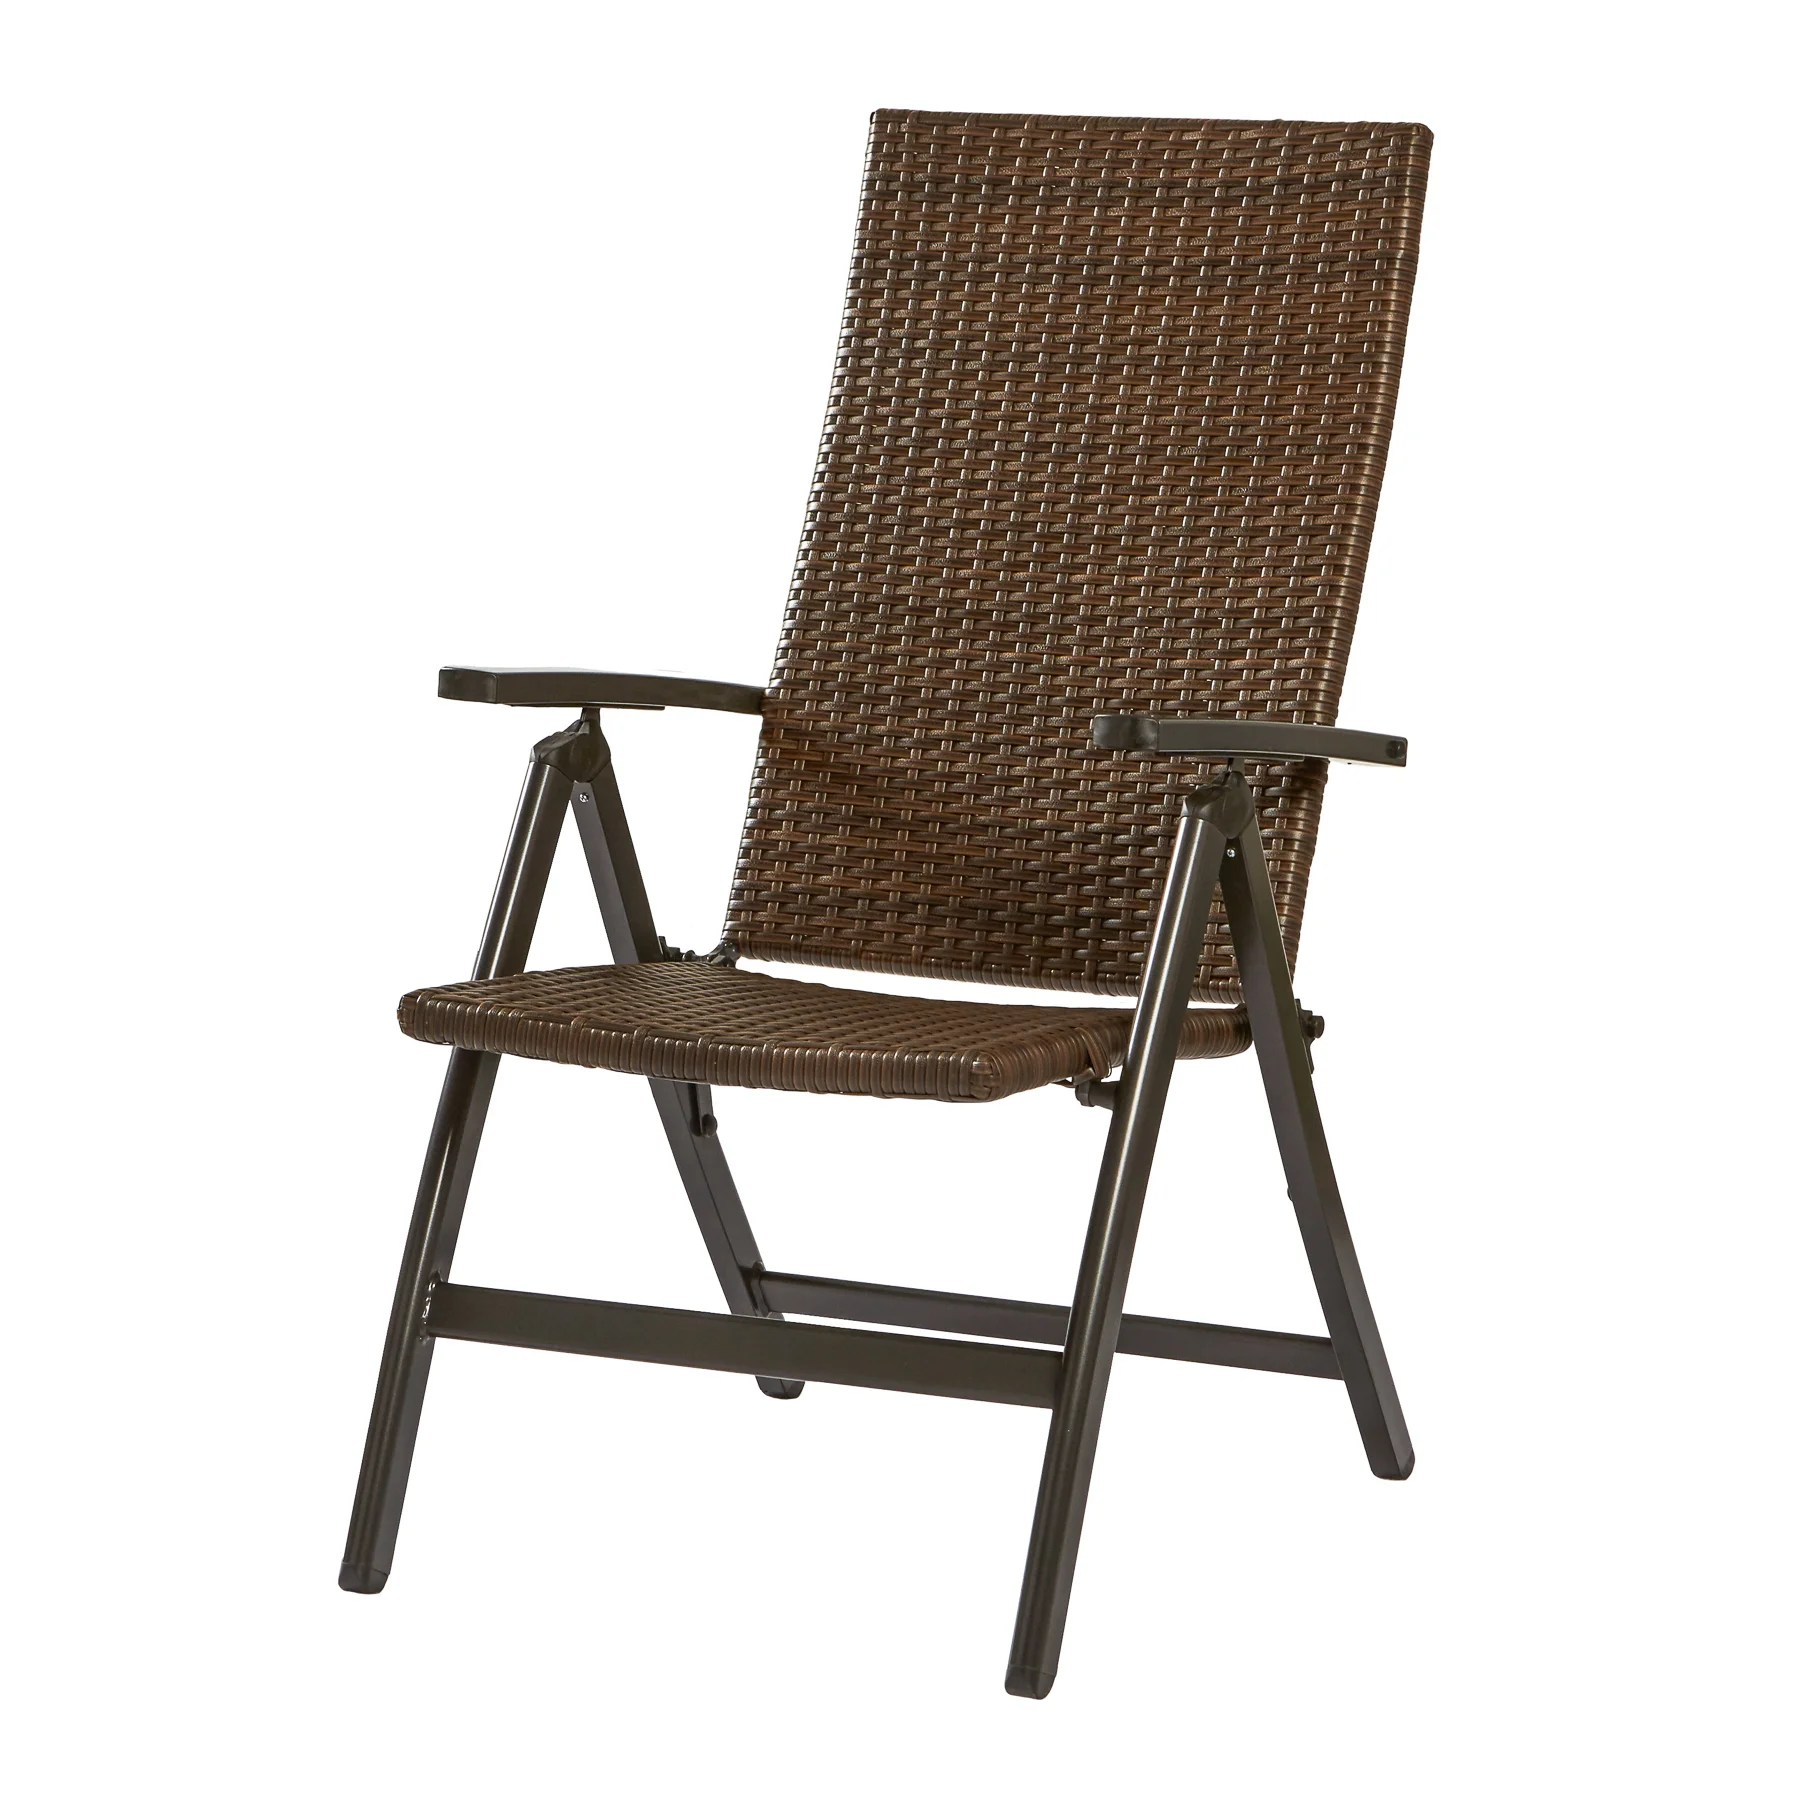 woven outdoor chair ergonomic on sale greendale home fashions wicker reclining zero